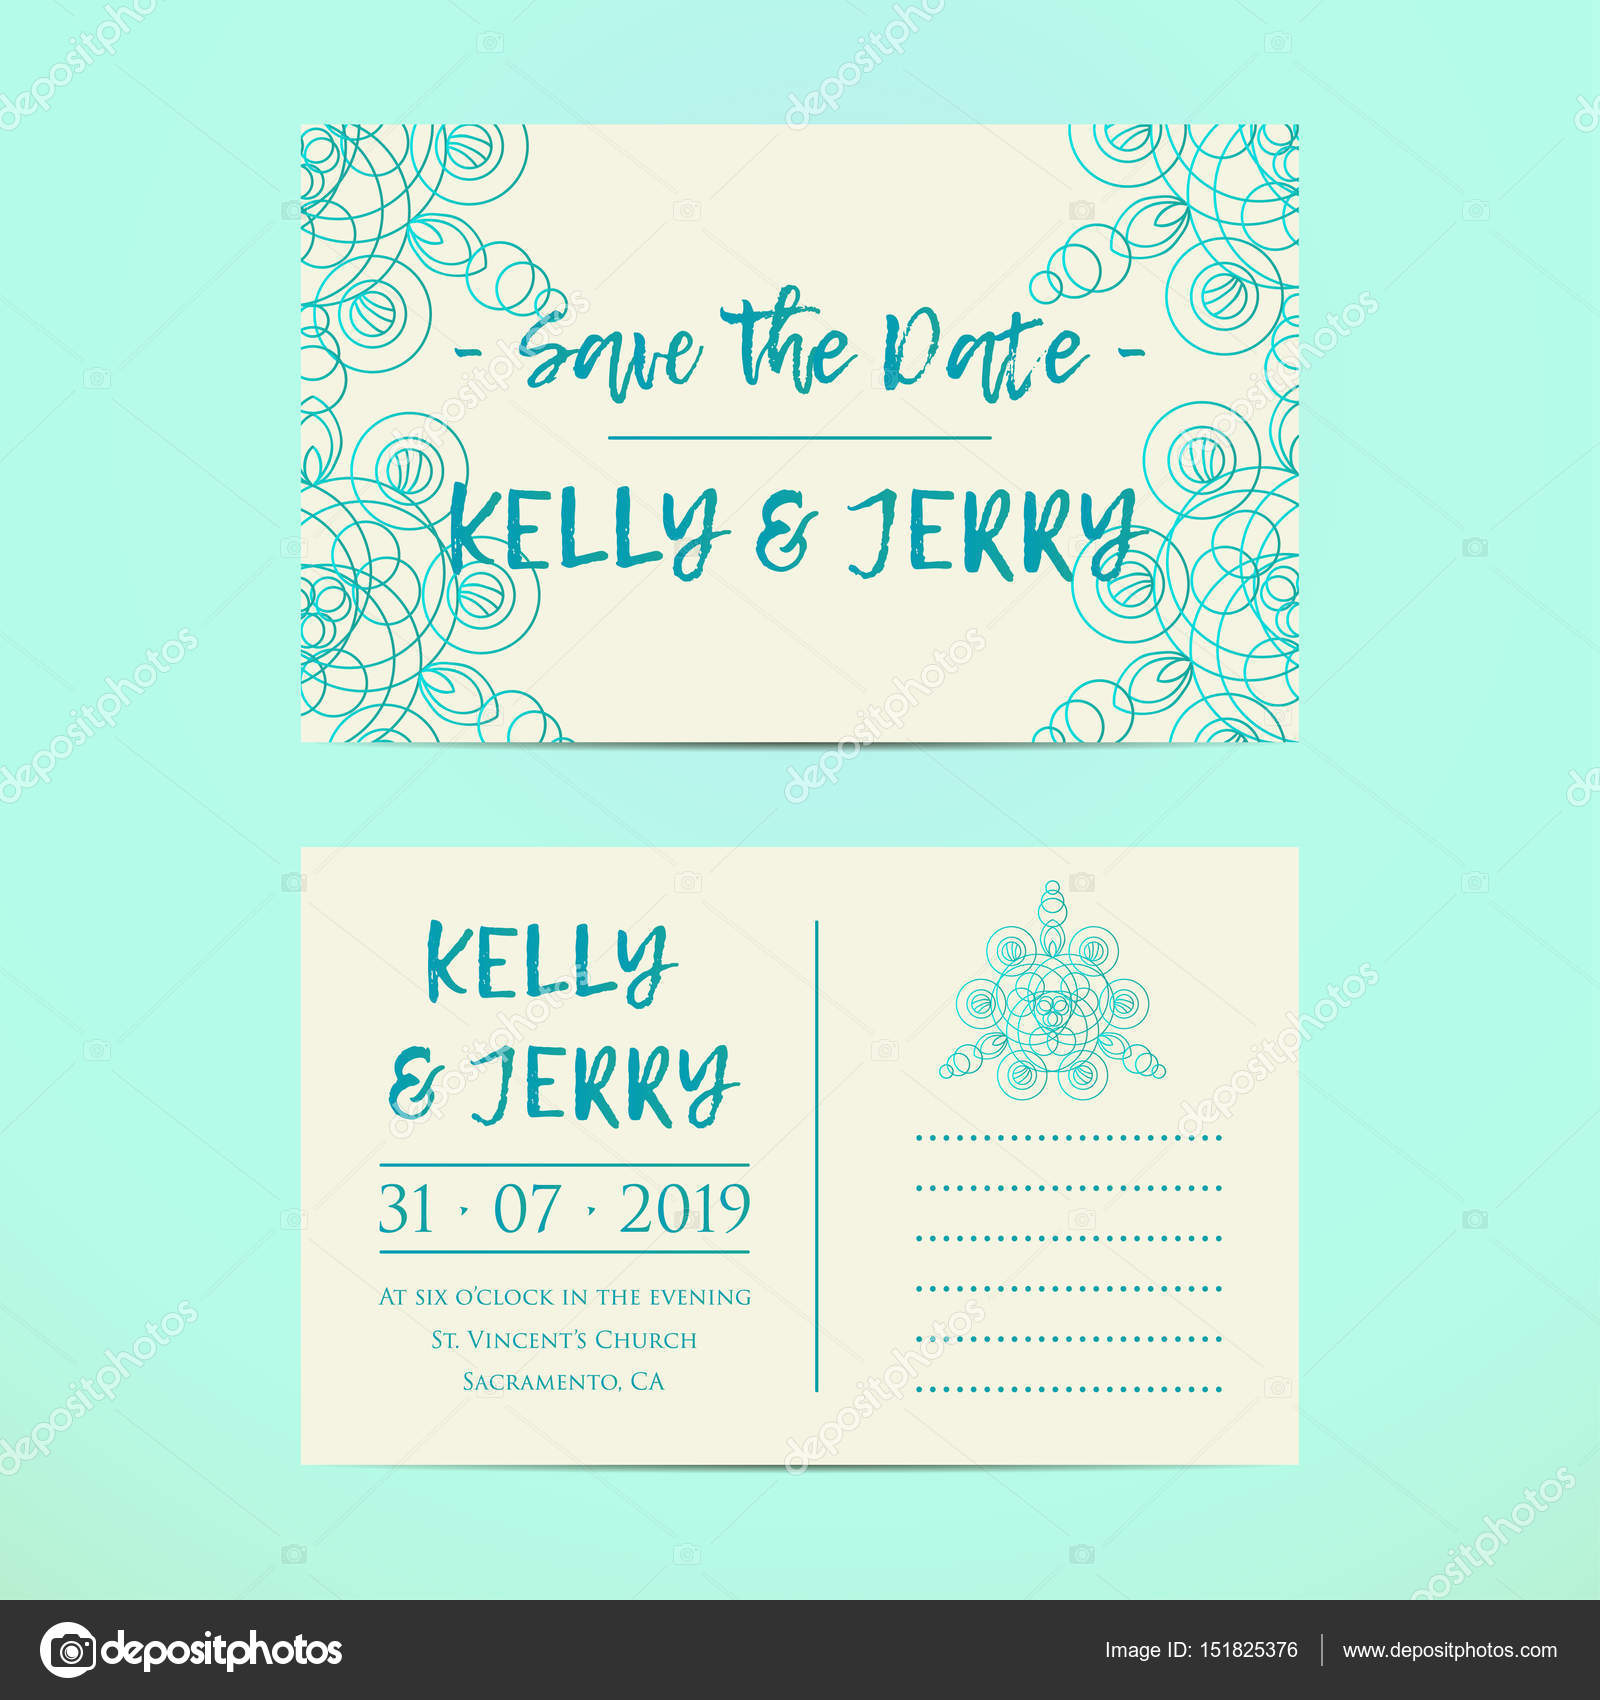 Vintage template design layout for wedding invitation wedding vintage template design layout for wedding invitation wedding invitation thank you card save stopboris Gallery